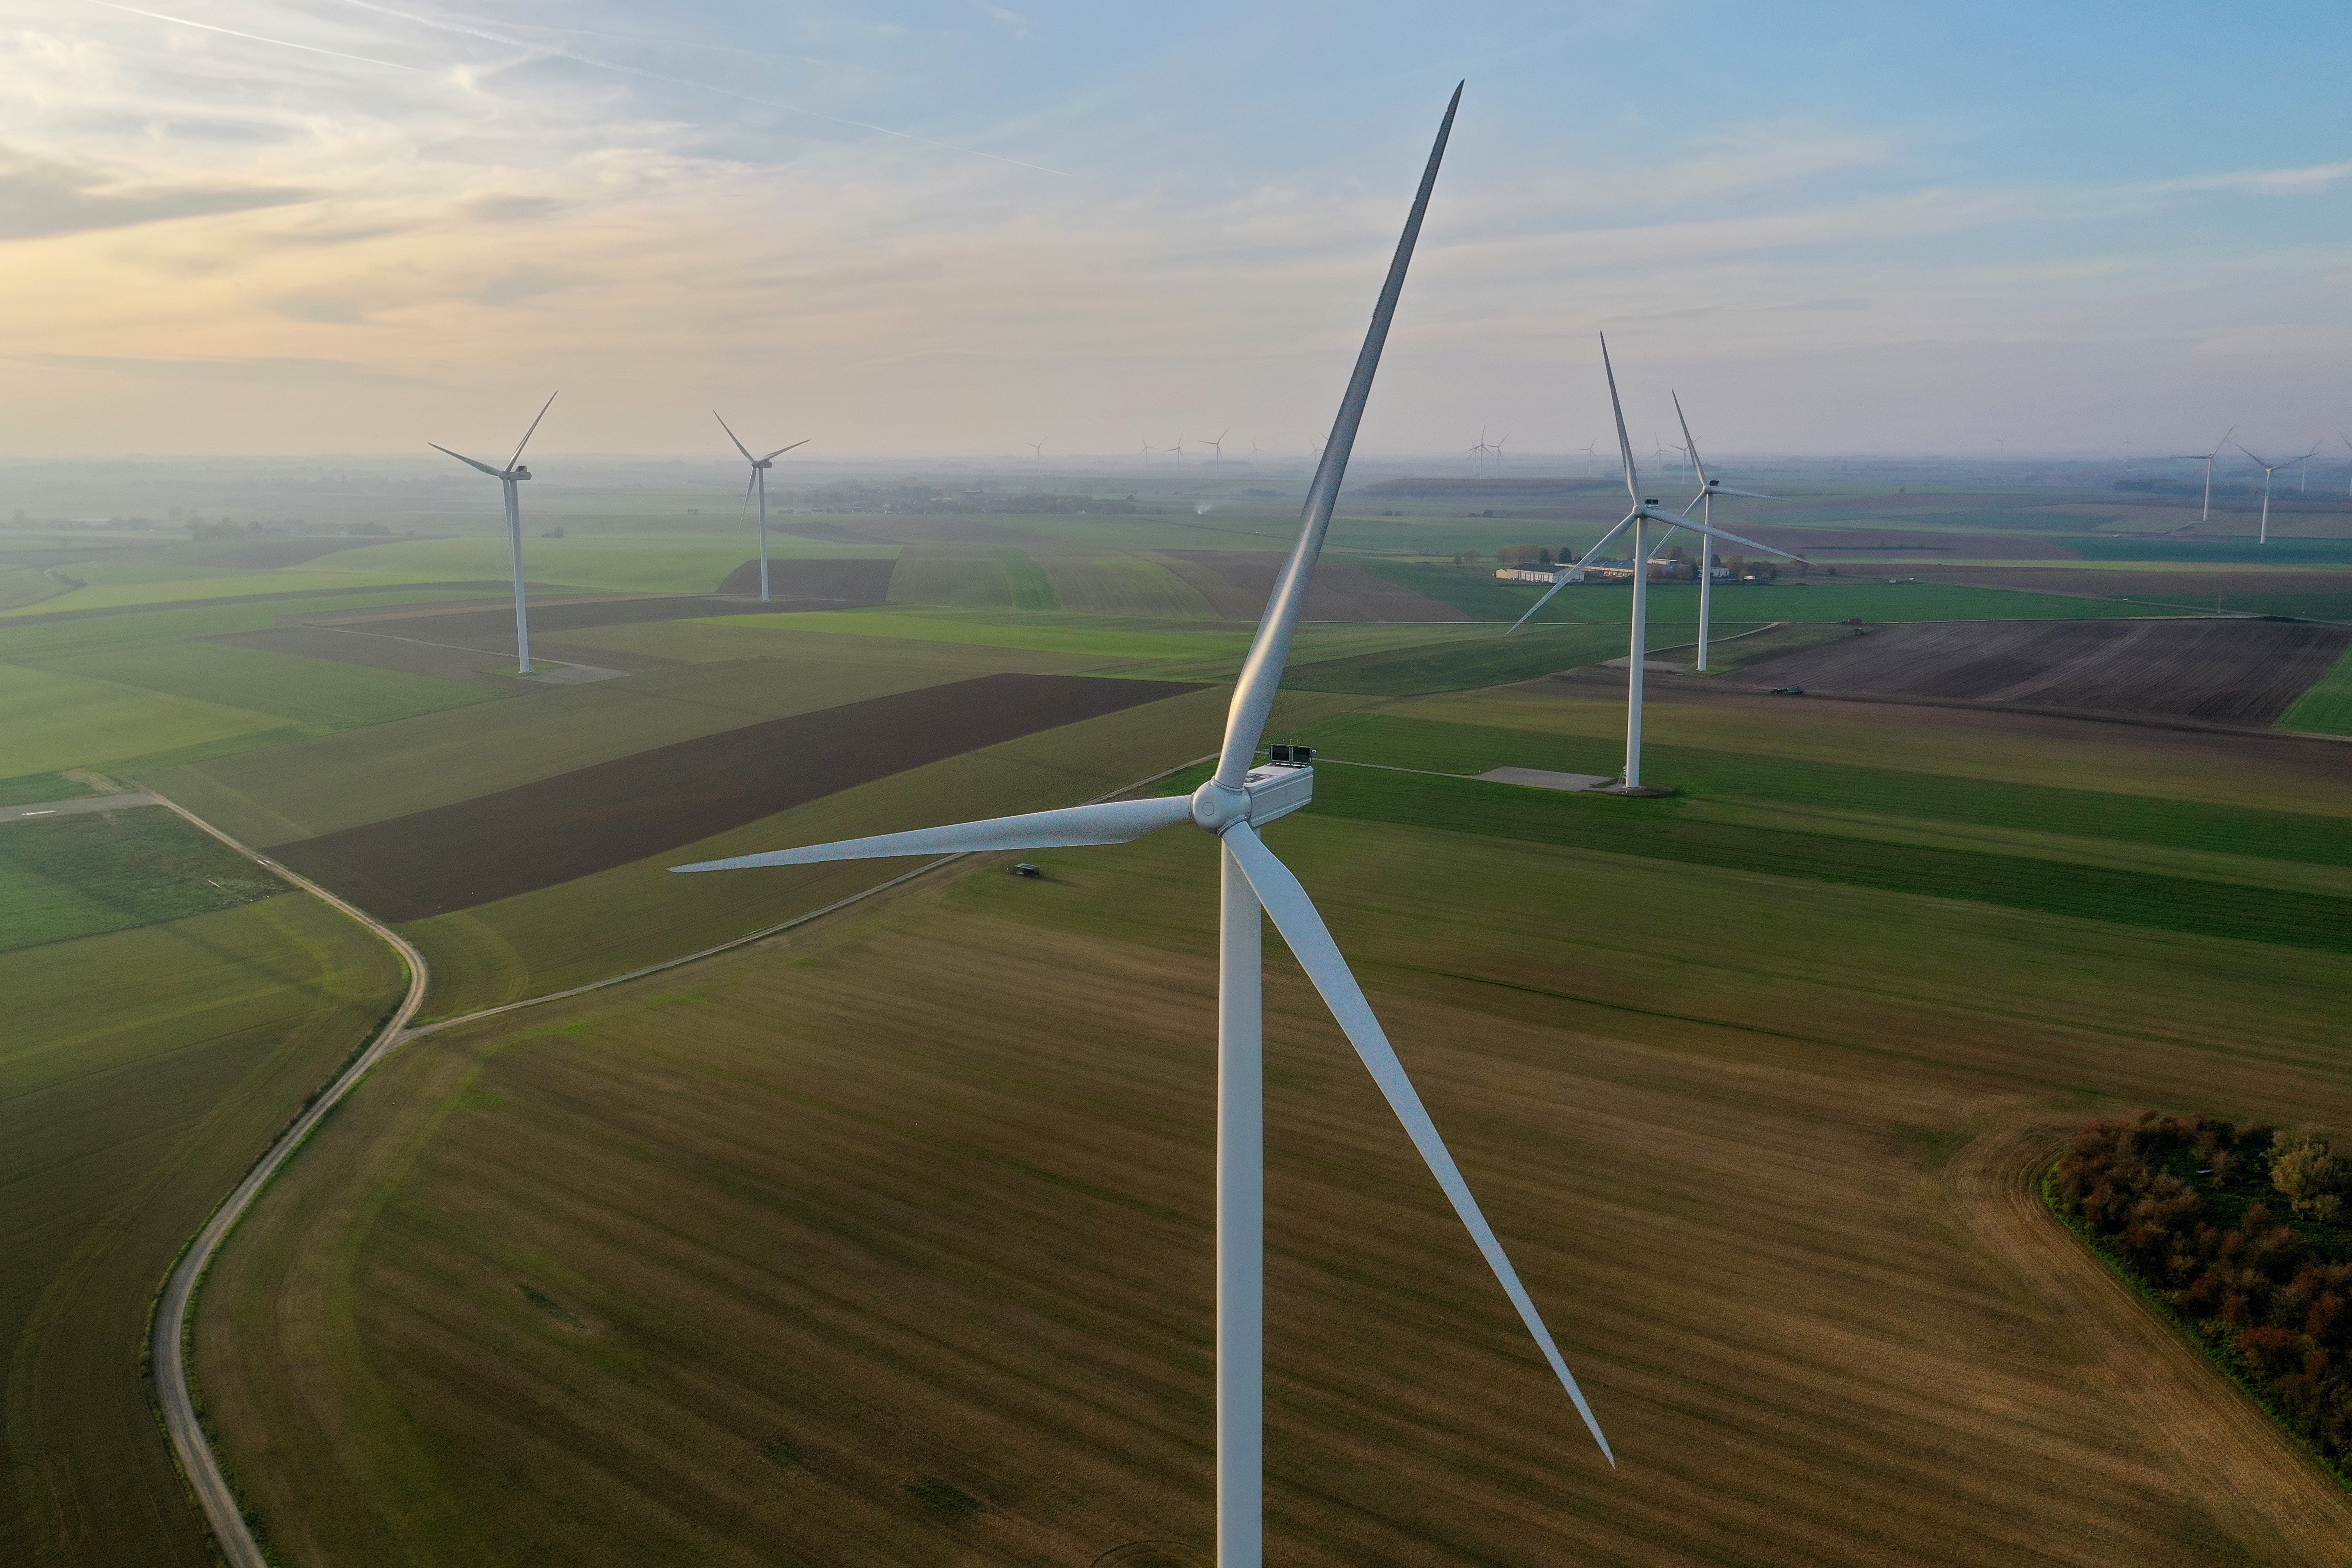 An aerial view shows power-generating windmill turbines in a wind farm in Graincourt-les-havrincourt, France, November 7, 2020. Picture taken, November 7, 2020 with a drone.  REUTERS/Pascal Rossignol - RC25ZJ9WFVGV